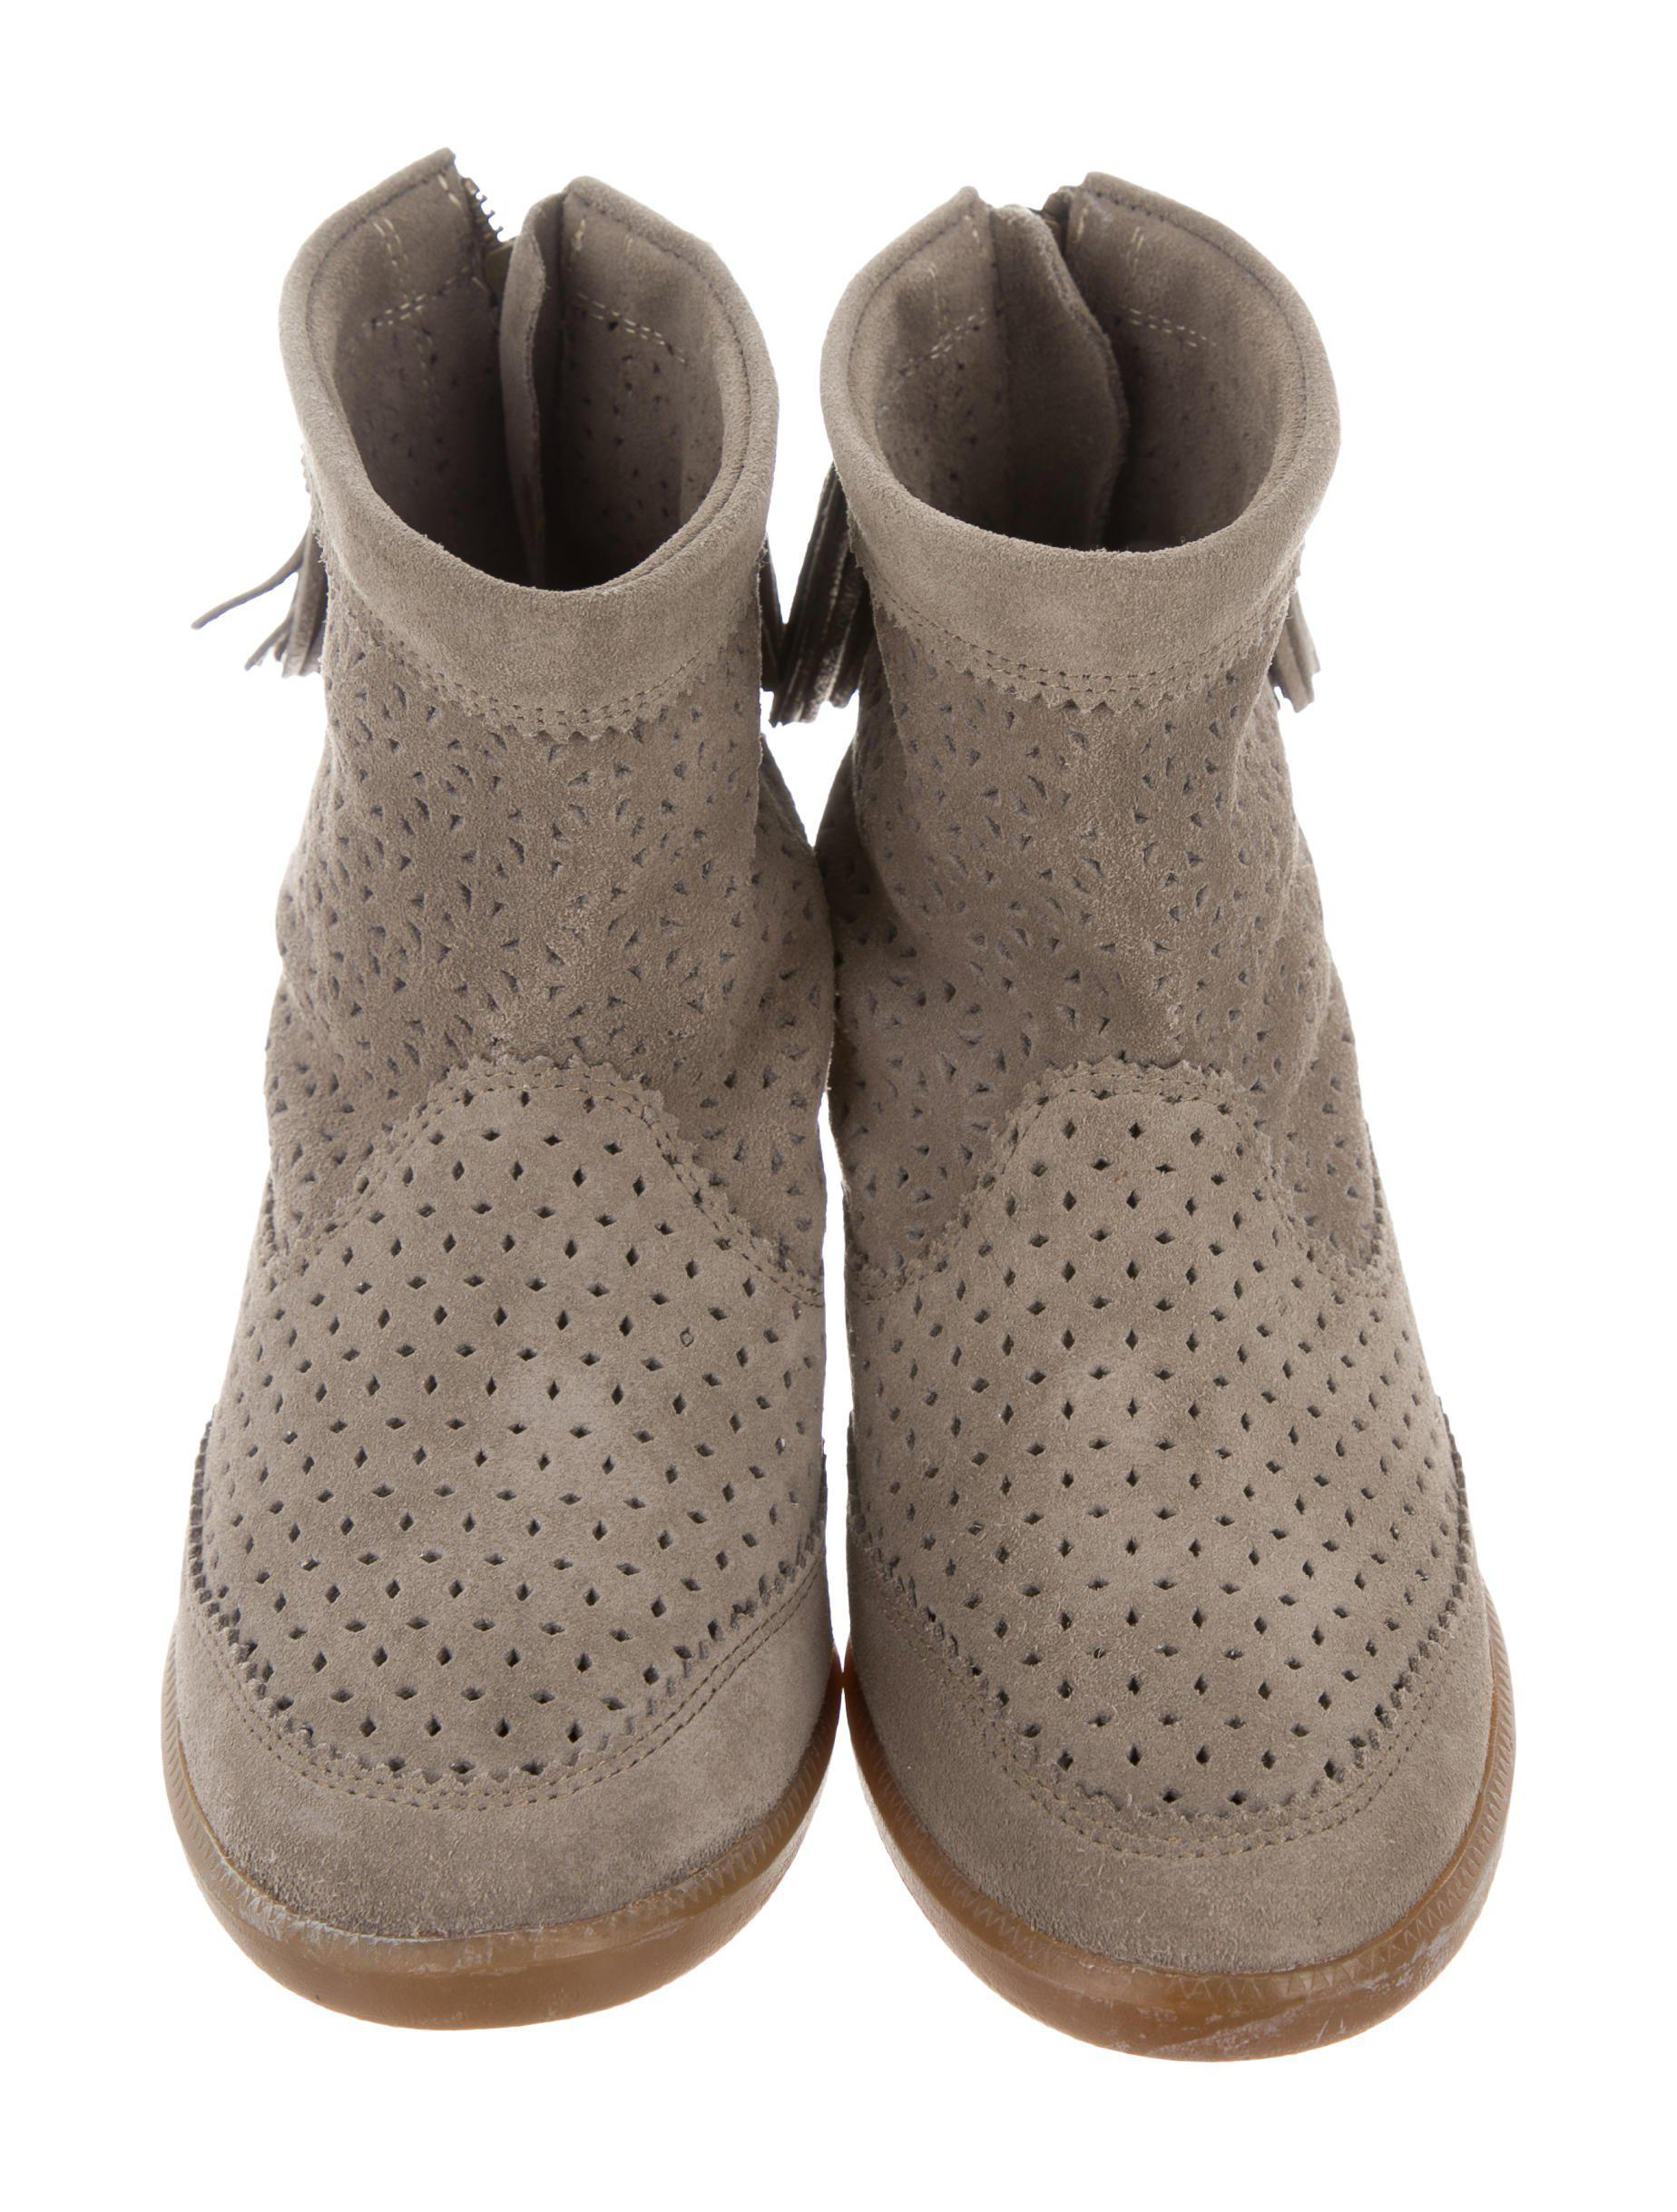 29b23ae55351 Lyst - Isabel Marant Beslay Perforated Booties in Gray